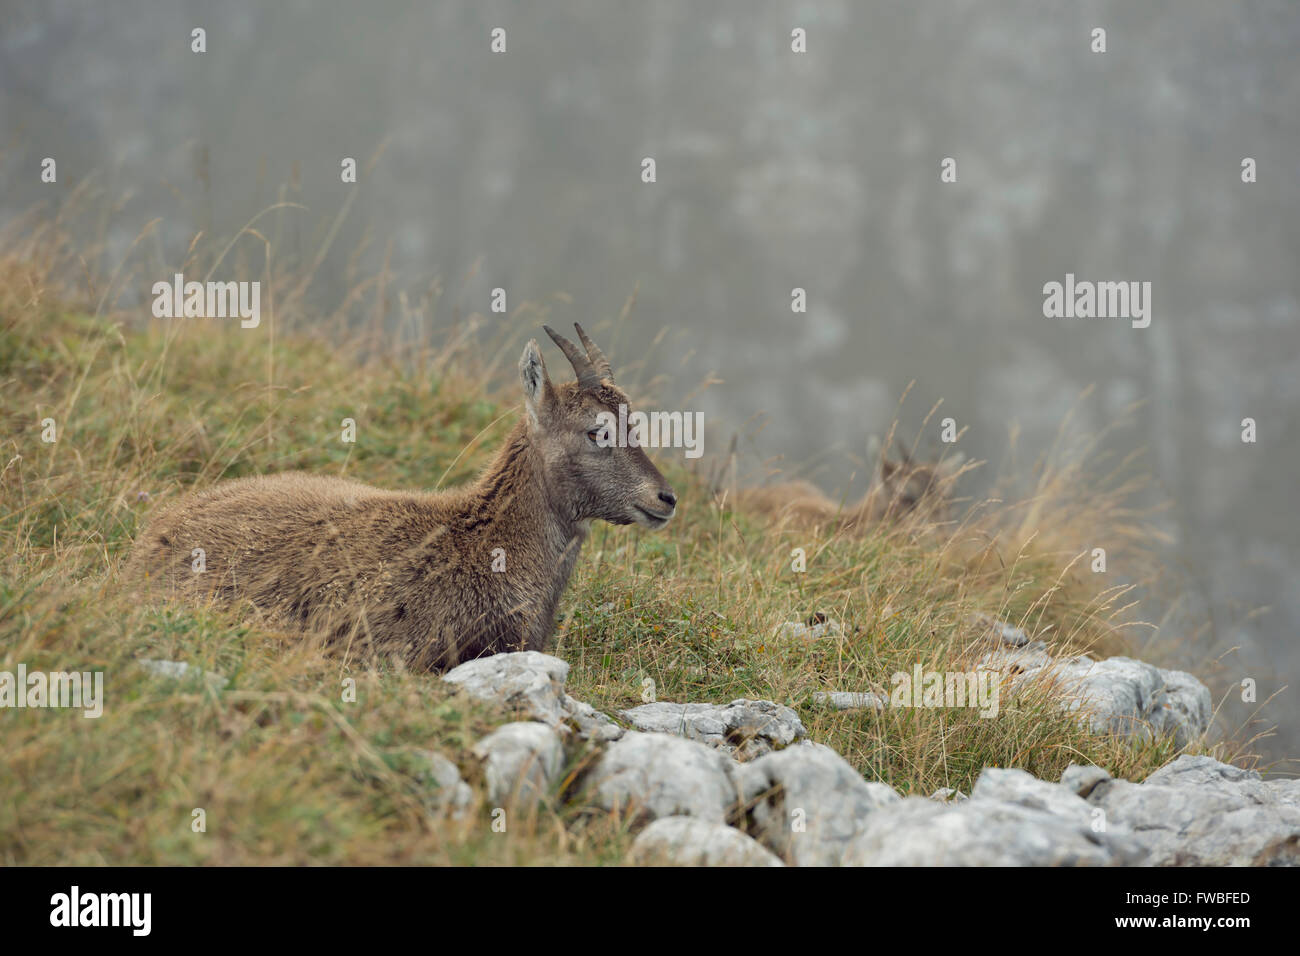 Alpine Ibex / Steinbock ( Capra ibex ), young animal, resting between rocks in the grass of an alpine meadow for - Stock Image